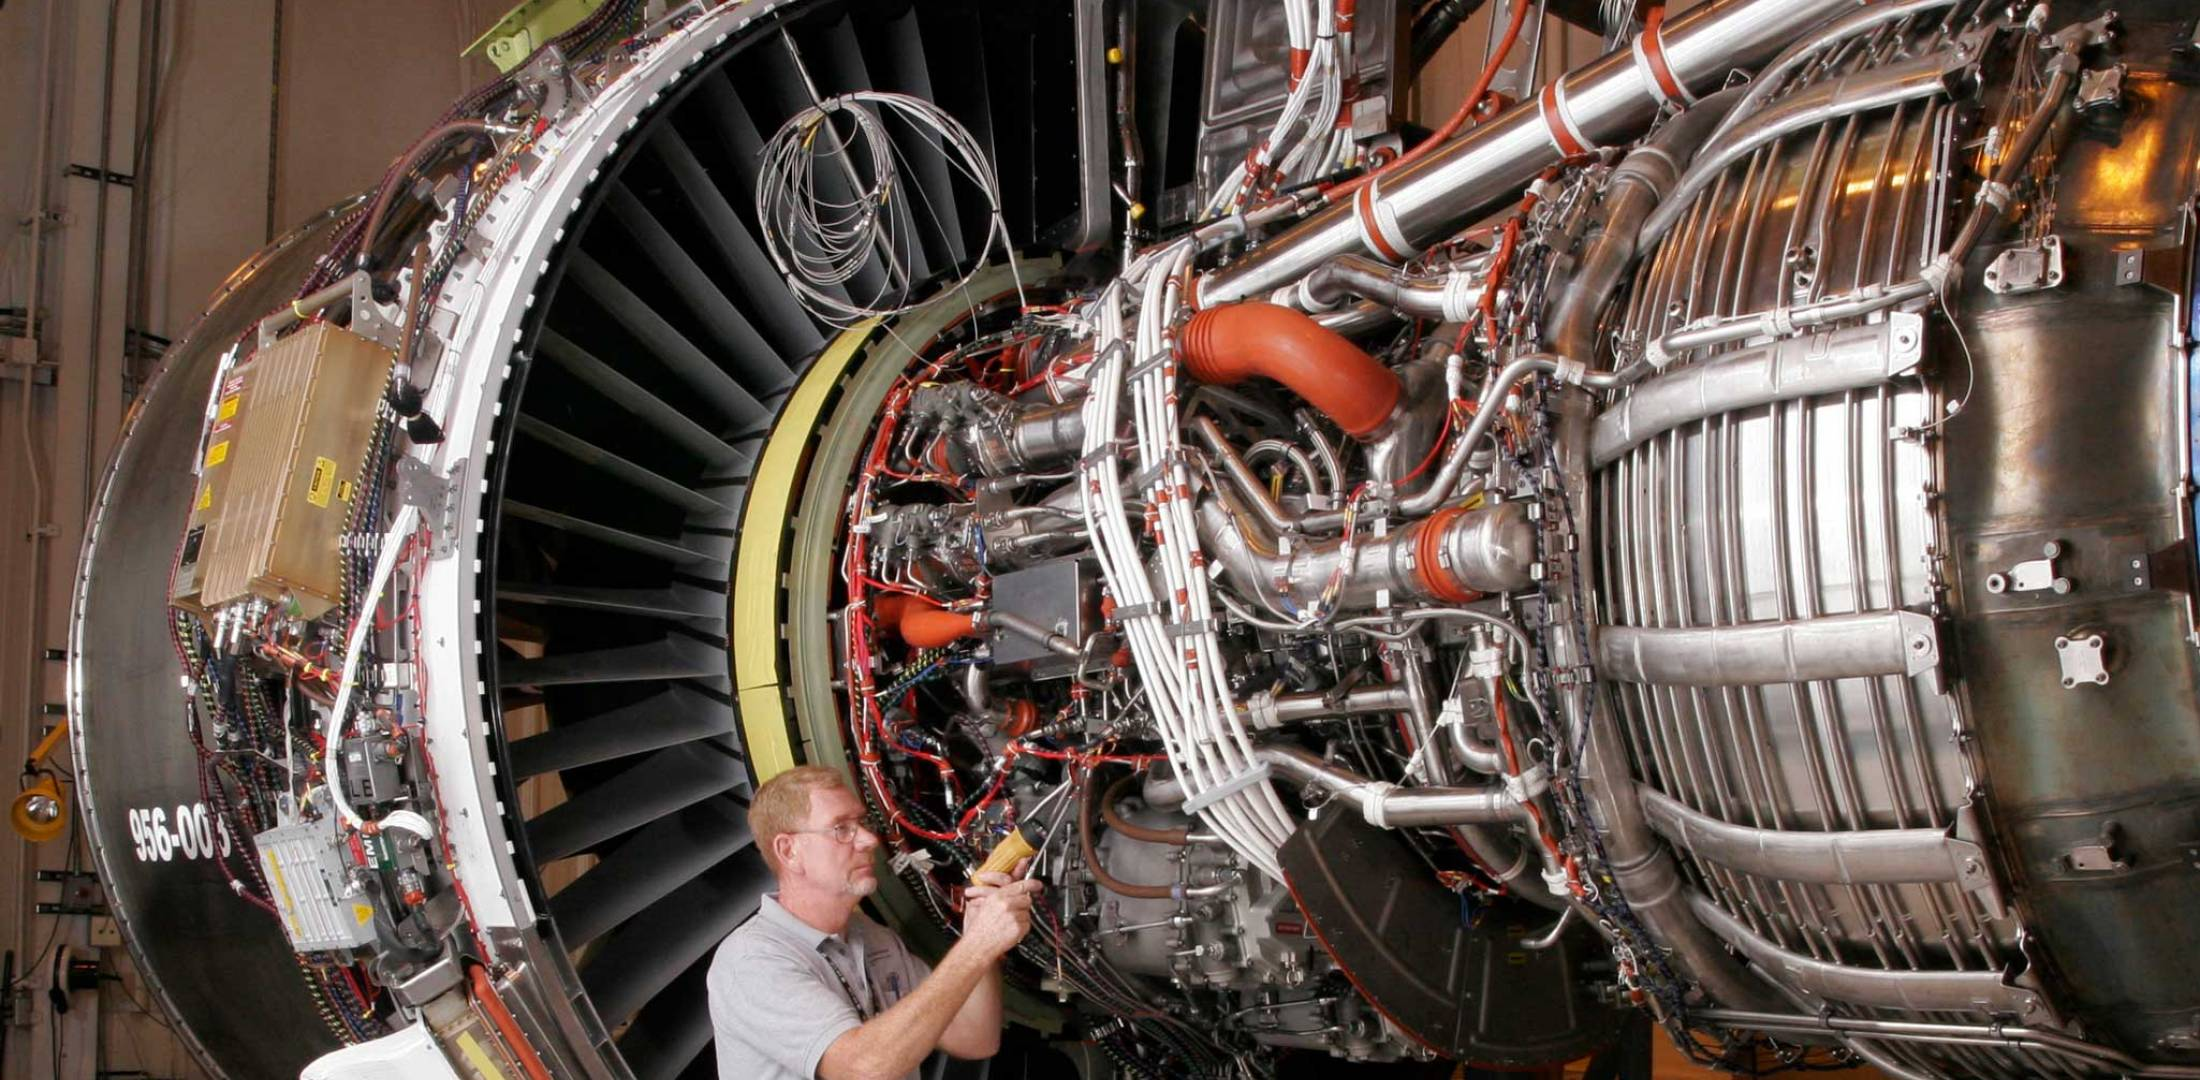 Ge Delivering New Genx Durability Upgrade Air Transport News 787 Wiring Issues The 1b Has Won About A 65 Percent Share Of Boeing Propulsion Market To Date And Nearly 90 In Last 12 Months Claims